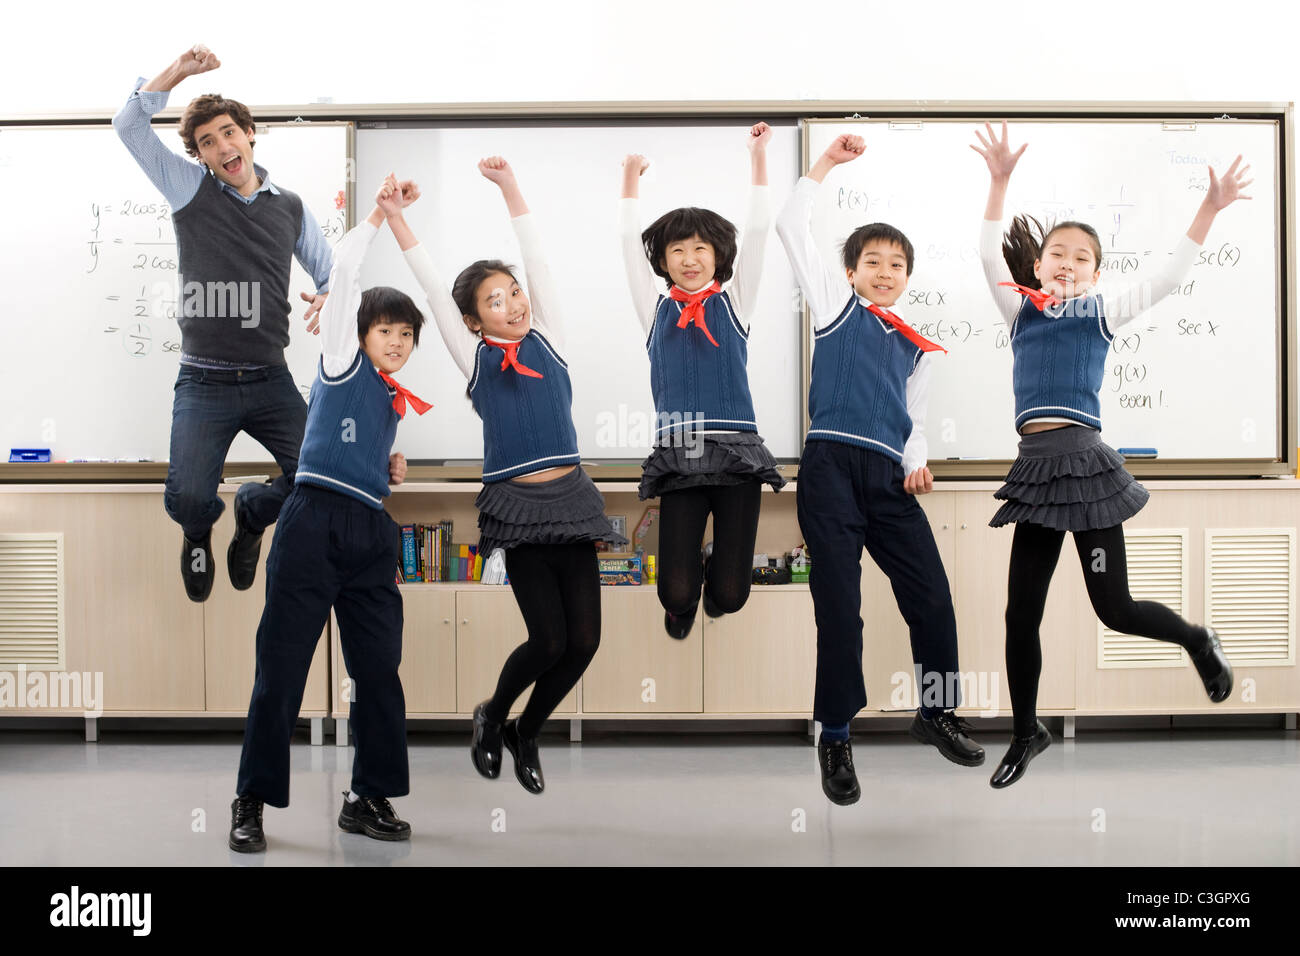 Teacher and students jumping in front of whiteboard - Stock Image